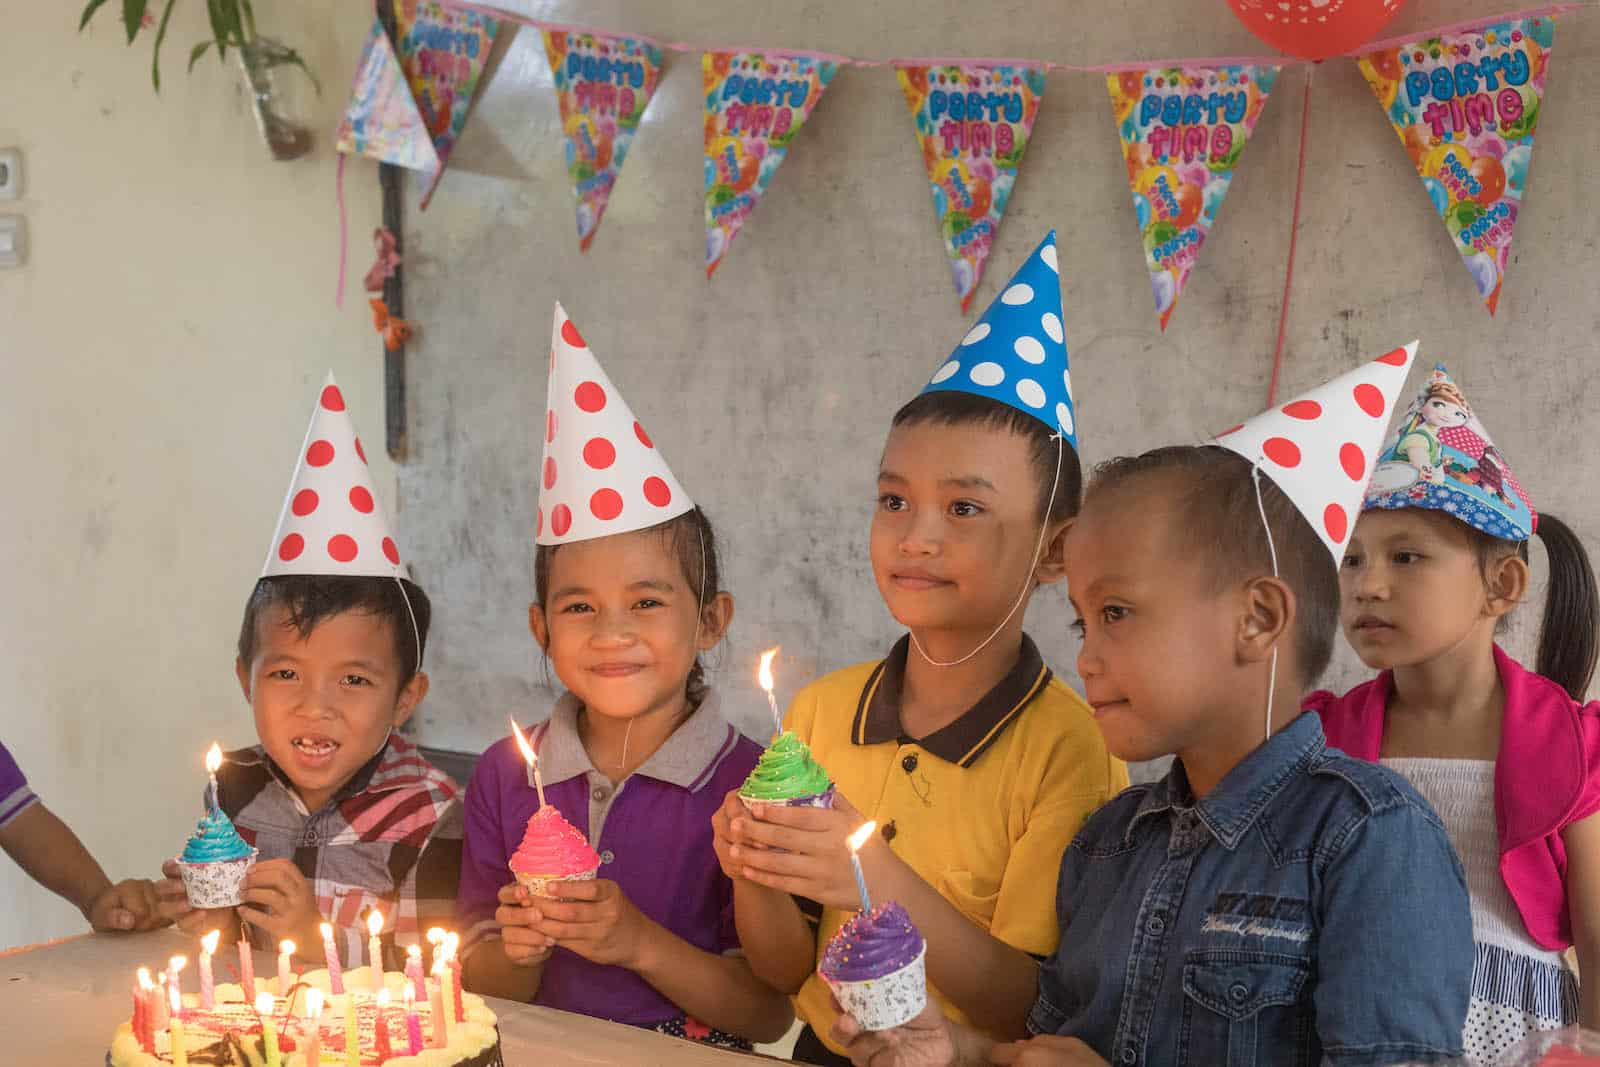 A group of children hold cupcakes, wearing birthday hats and standing in front of a lit birthday cake.